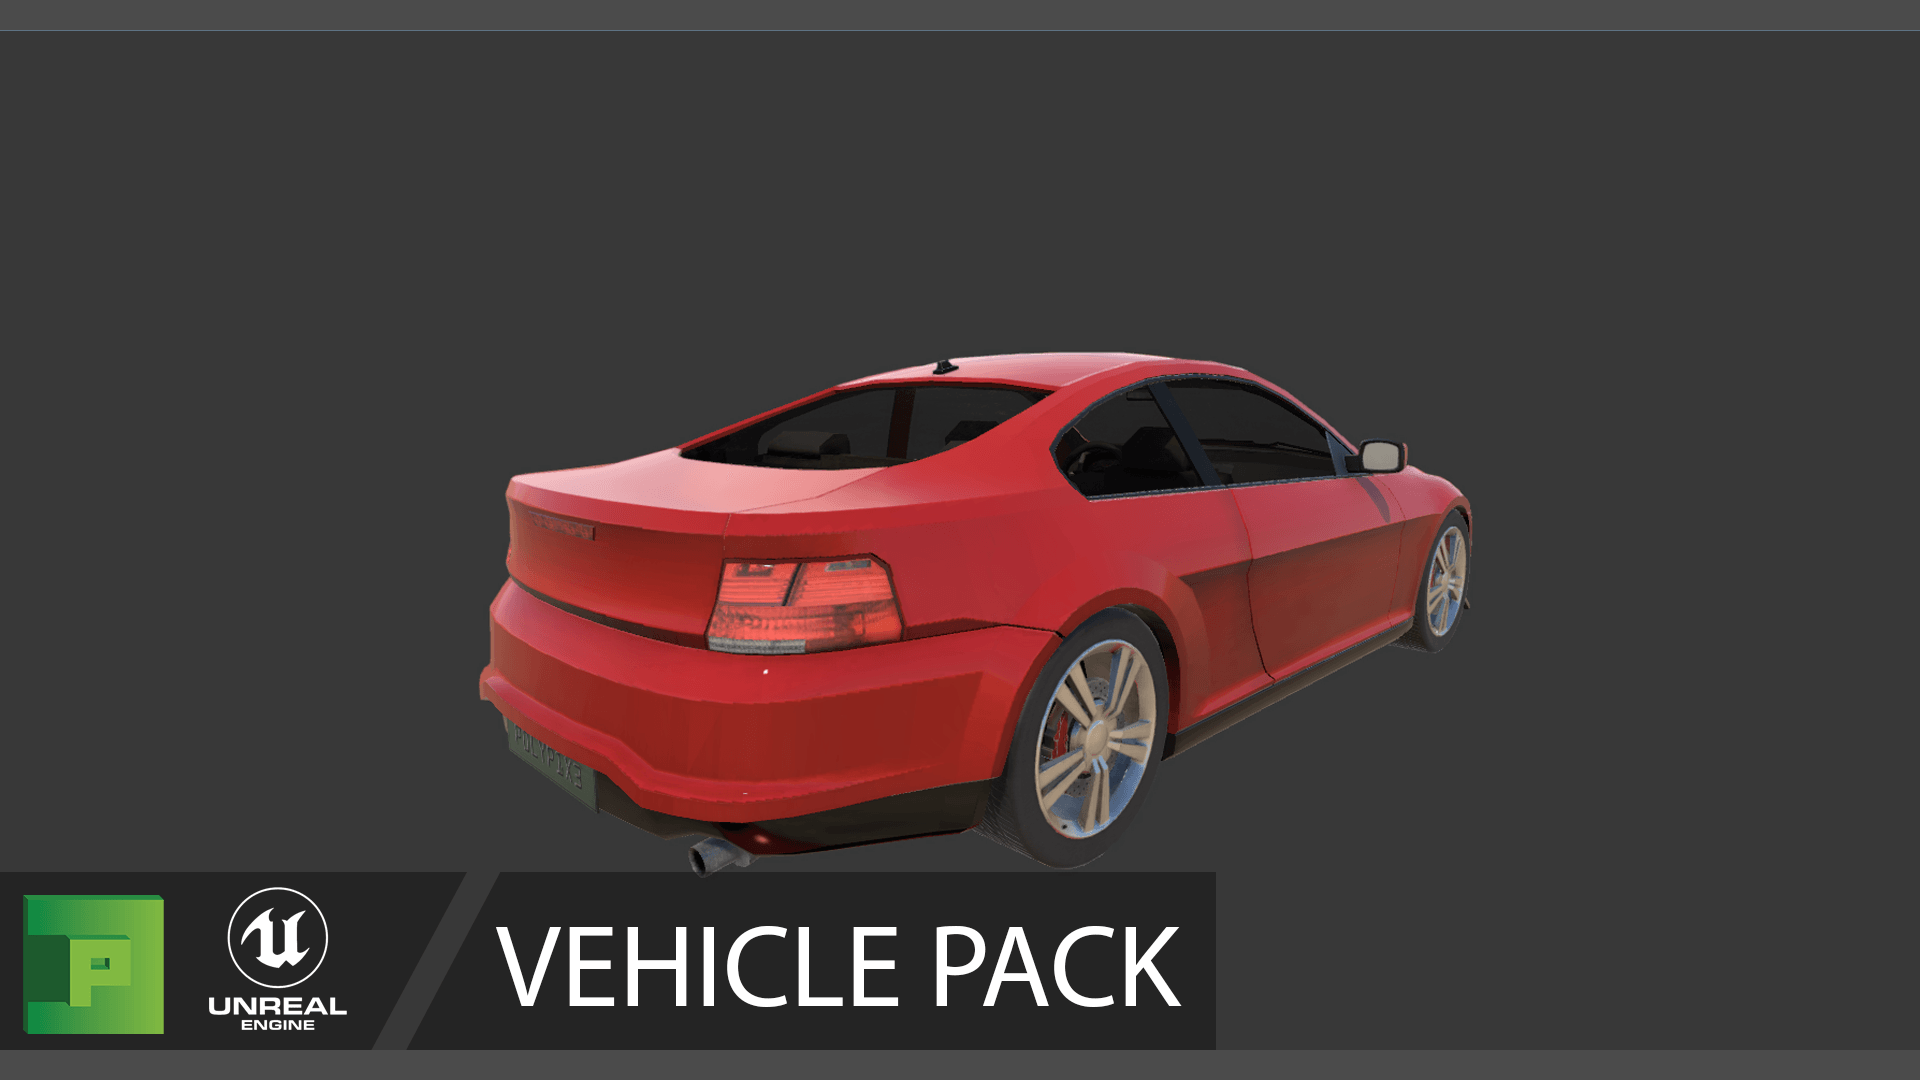 VehiclePack_06